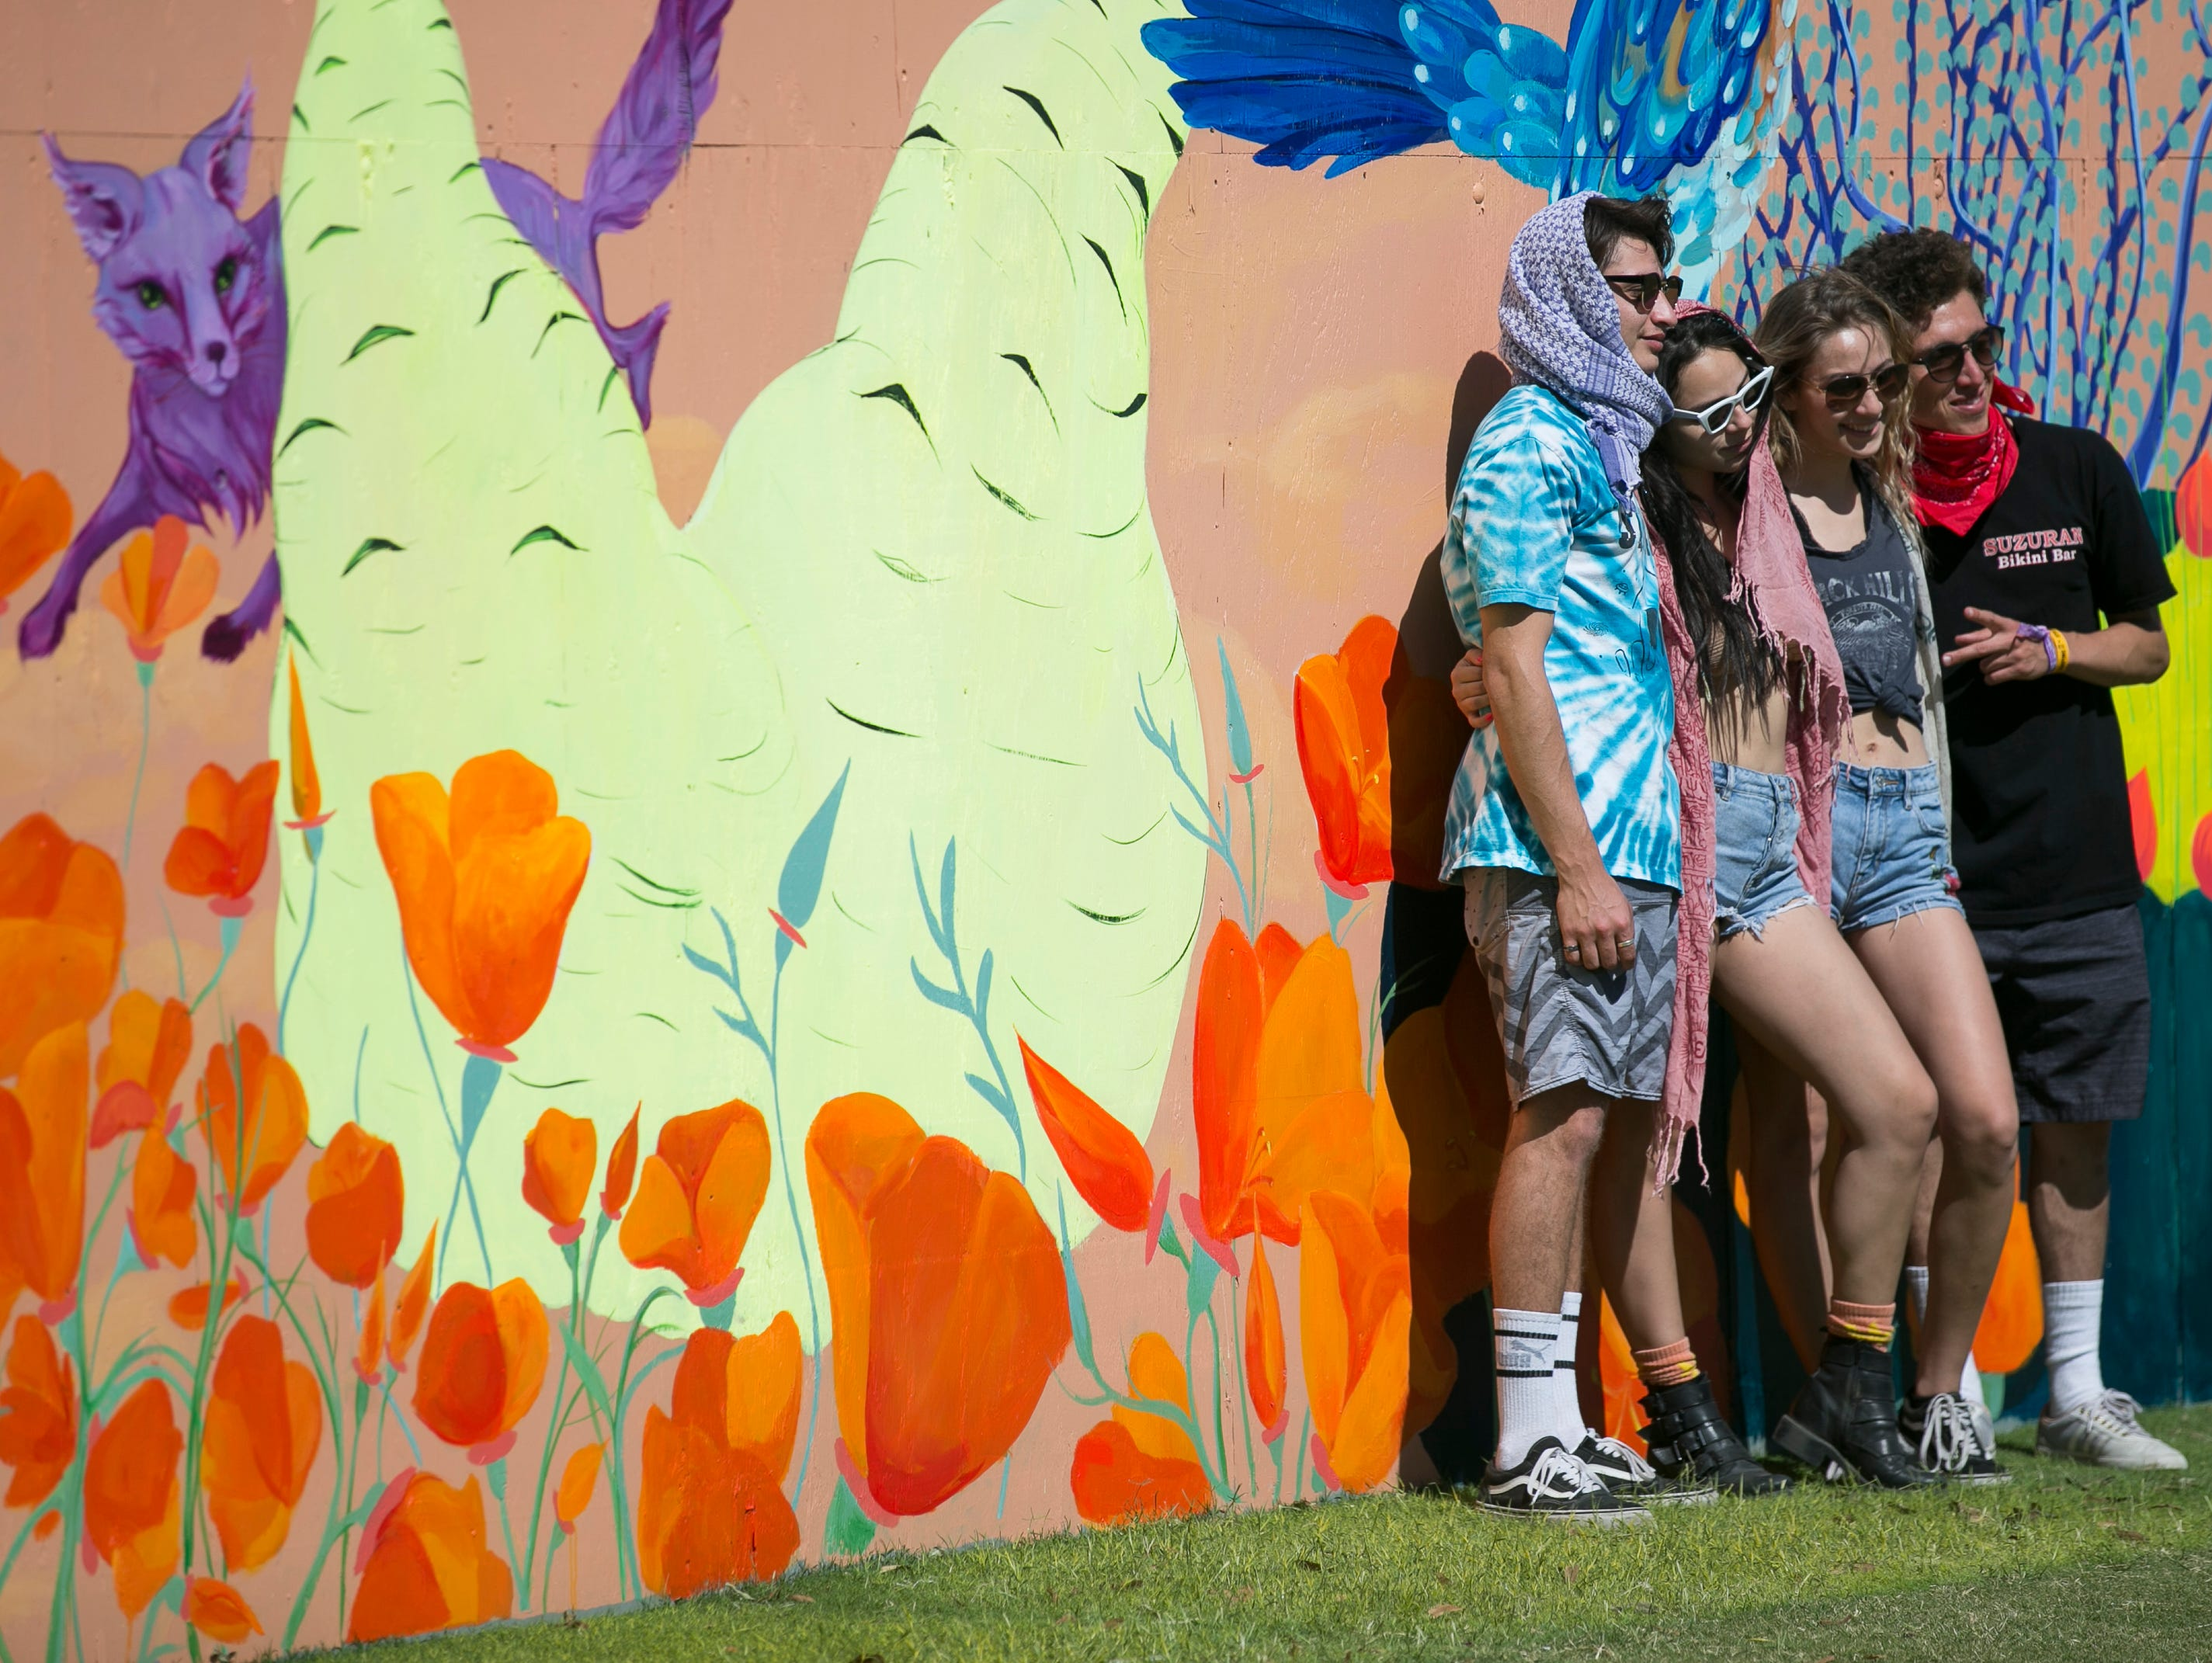 Festival-goers pose in front of a mural near the lobby at the Coachella Valley Music and Arts Festival in Indio, California, on April 11, 2019.